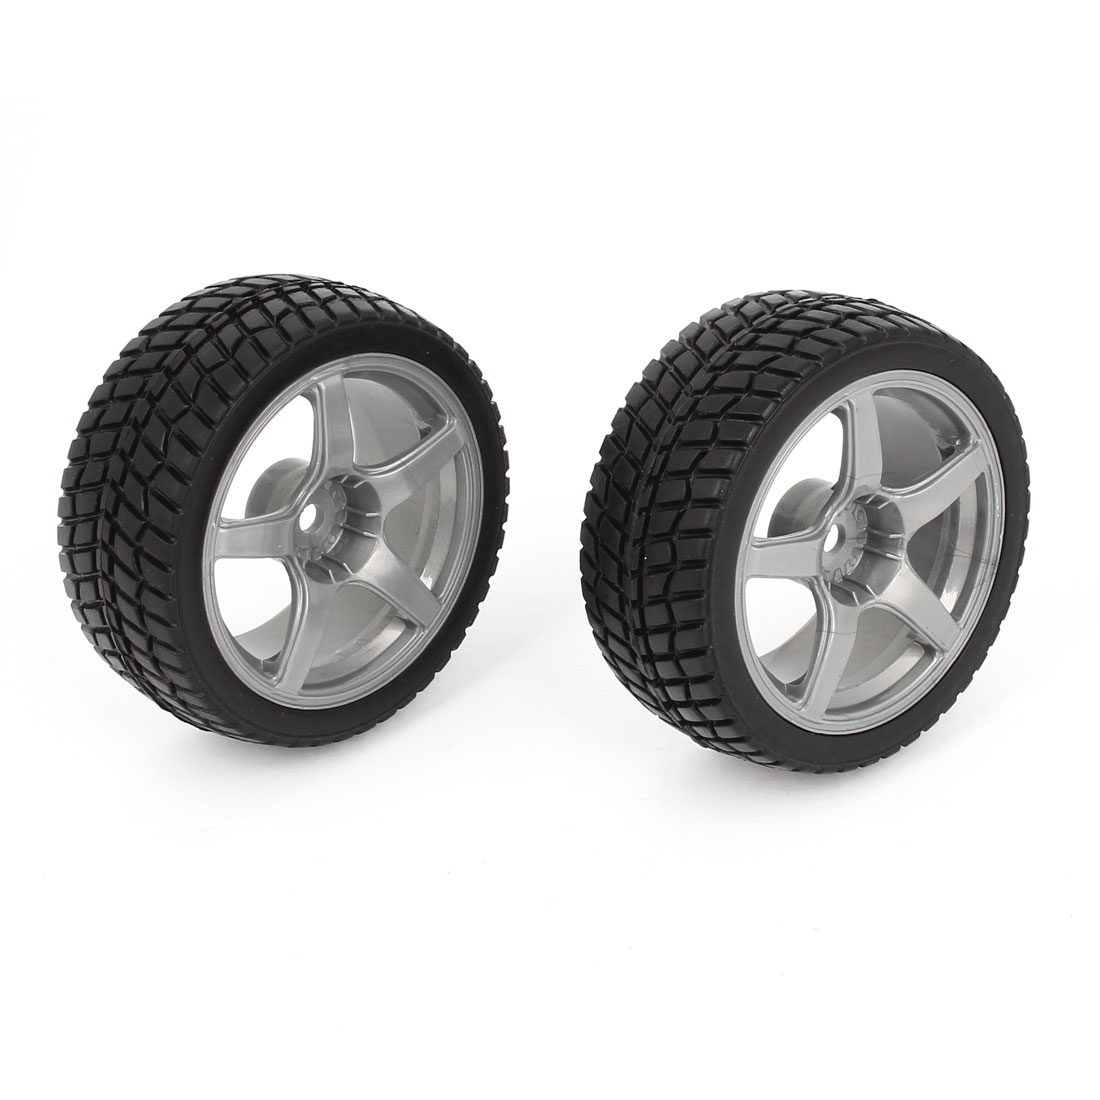 2pcs Black Gray 1:10 RC Model Flat Racing Car Truck Wheel Rim Tyre 67mm Dia